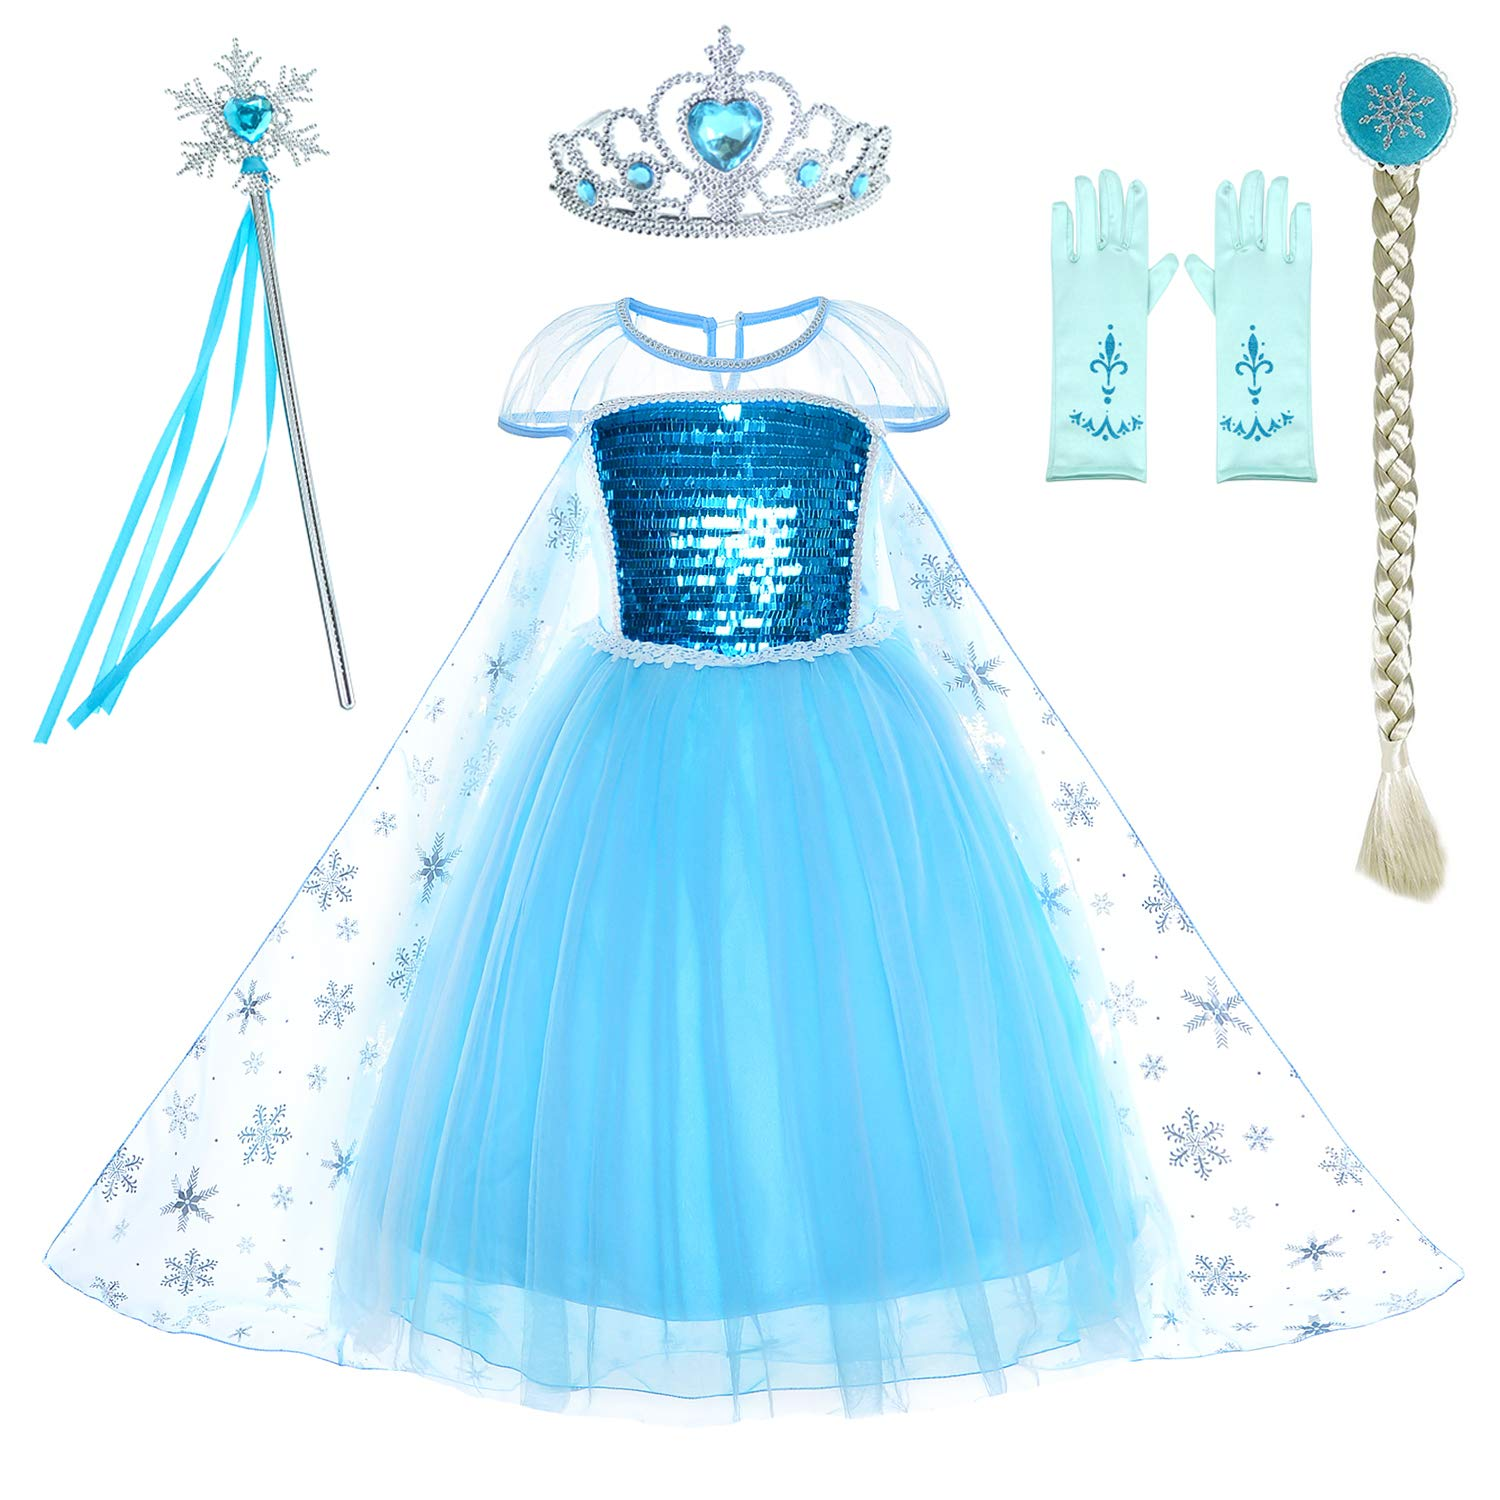 Amazon com snow queen princess elsa costumes birthday dress up for little girls with crownmacegloves accessories 3 12 years clothing